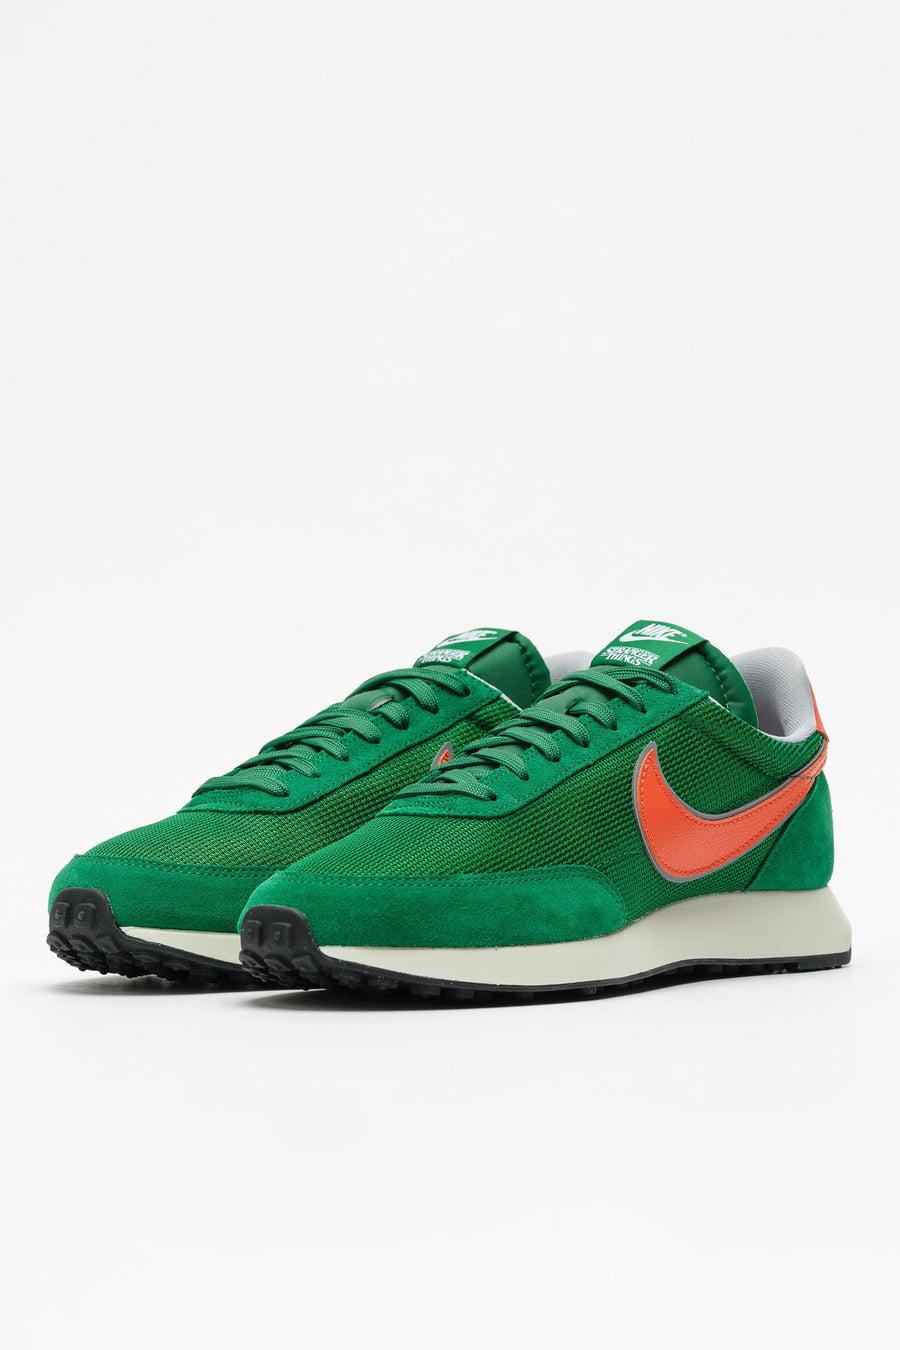 Nike Stranger Things Hawkins High Air Tailwind 79 in Pine Green/Clay - Notre